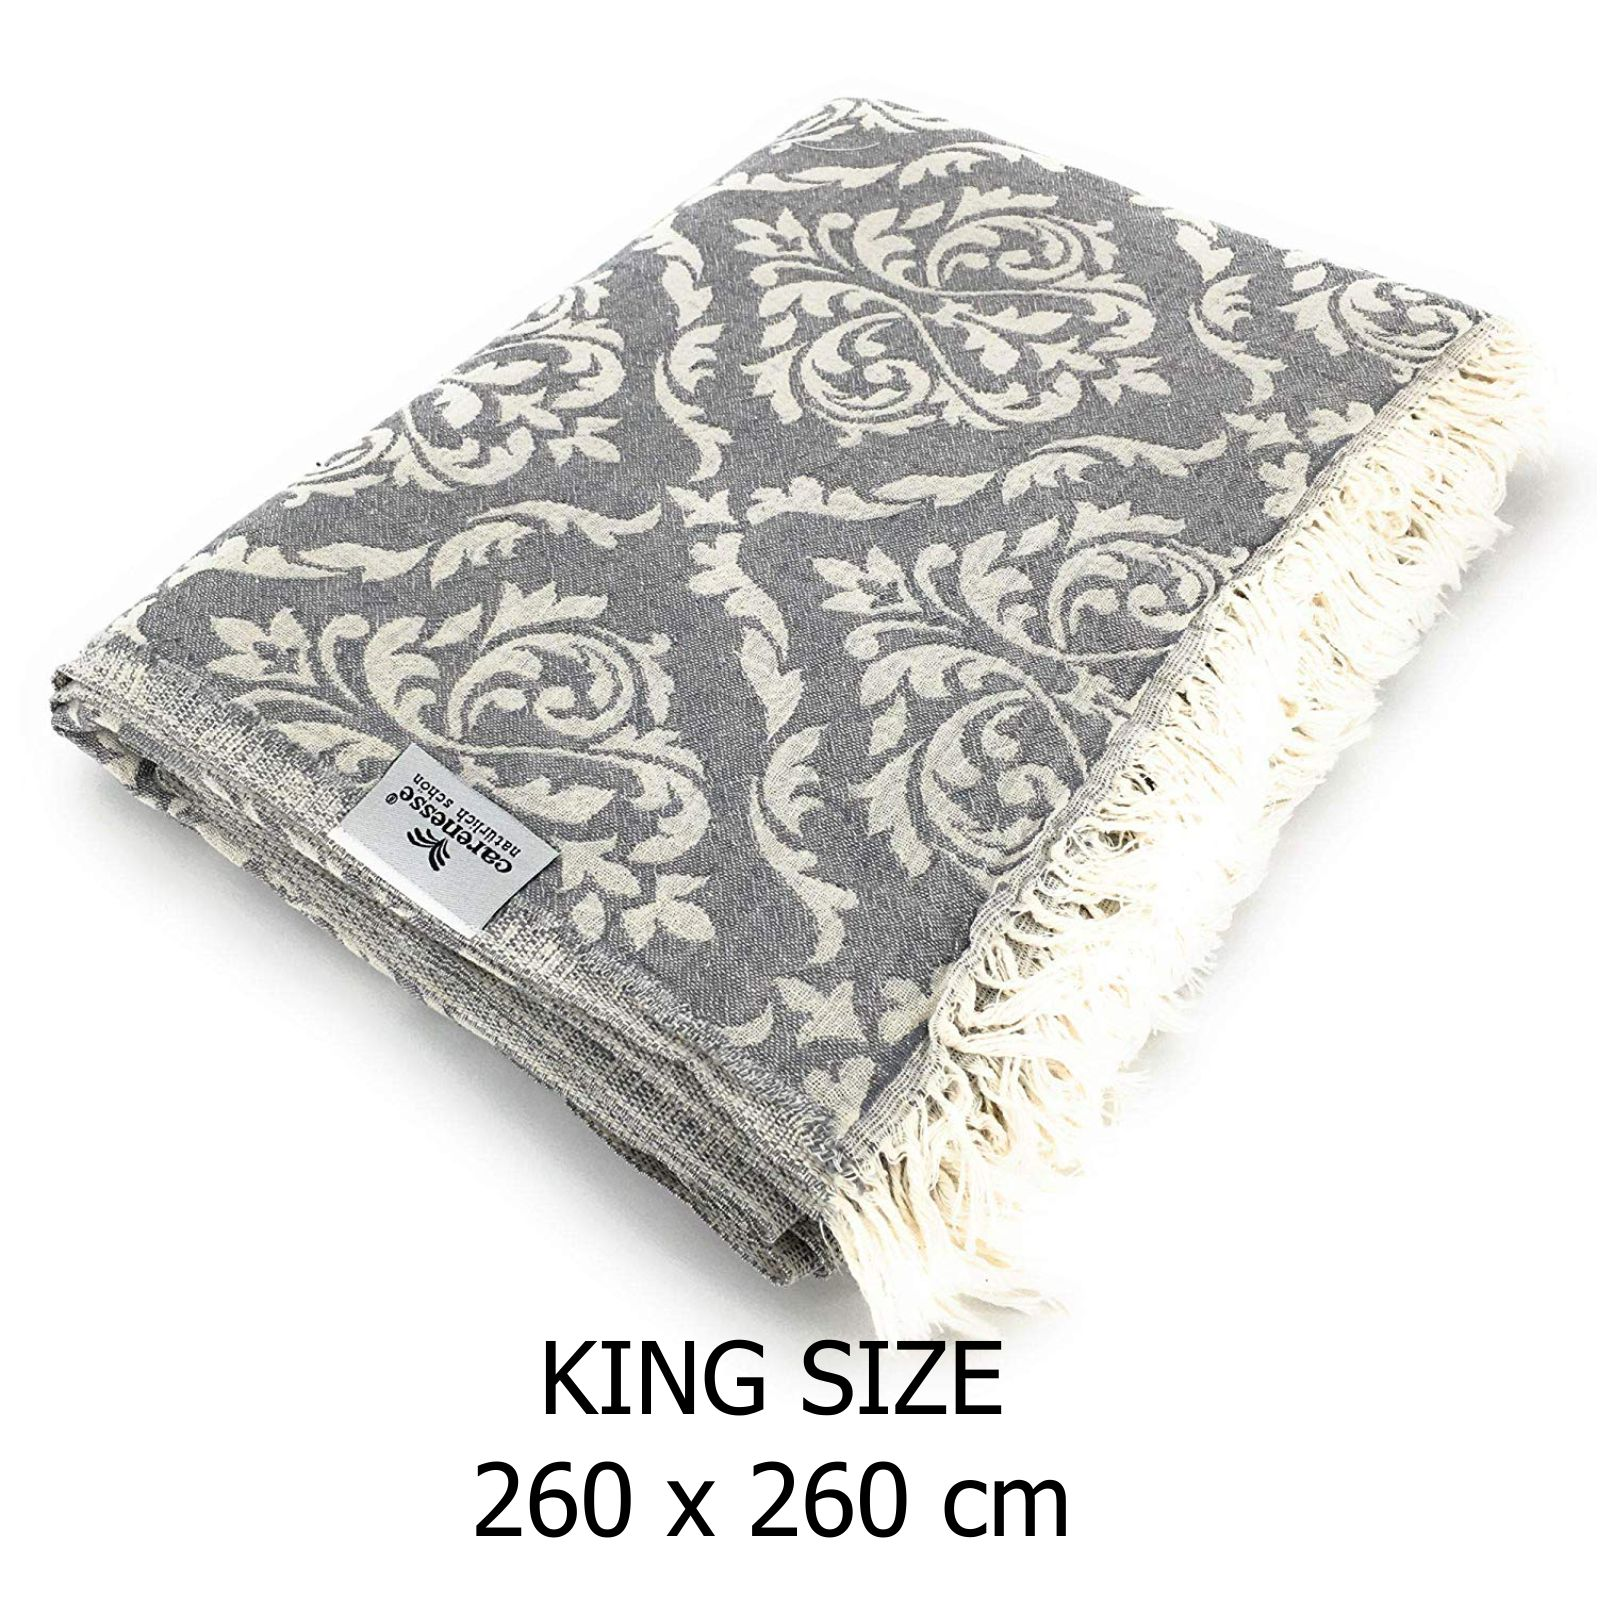 Couchdecke Grau Details About Plaid Bedspread Baroque King Size Grey Bed Sofa Blanket Sofa Blanket 260 X 260 Cm Cotton Show Original Title